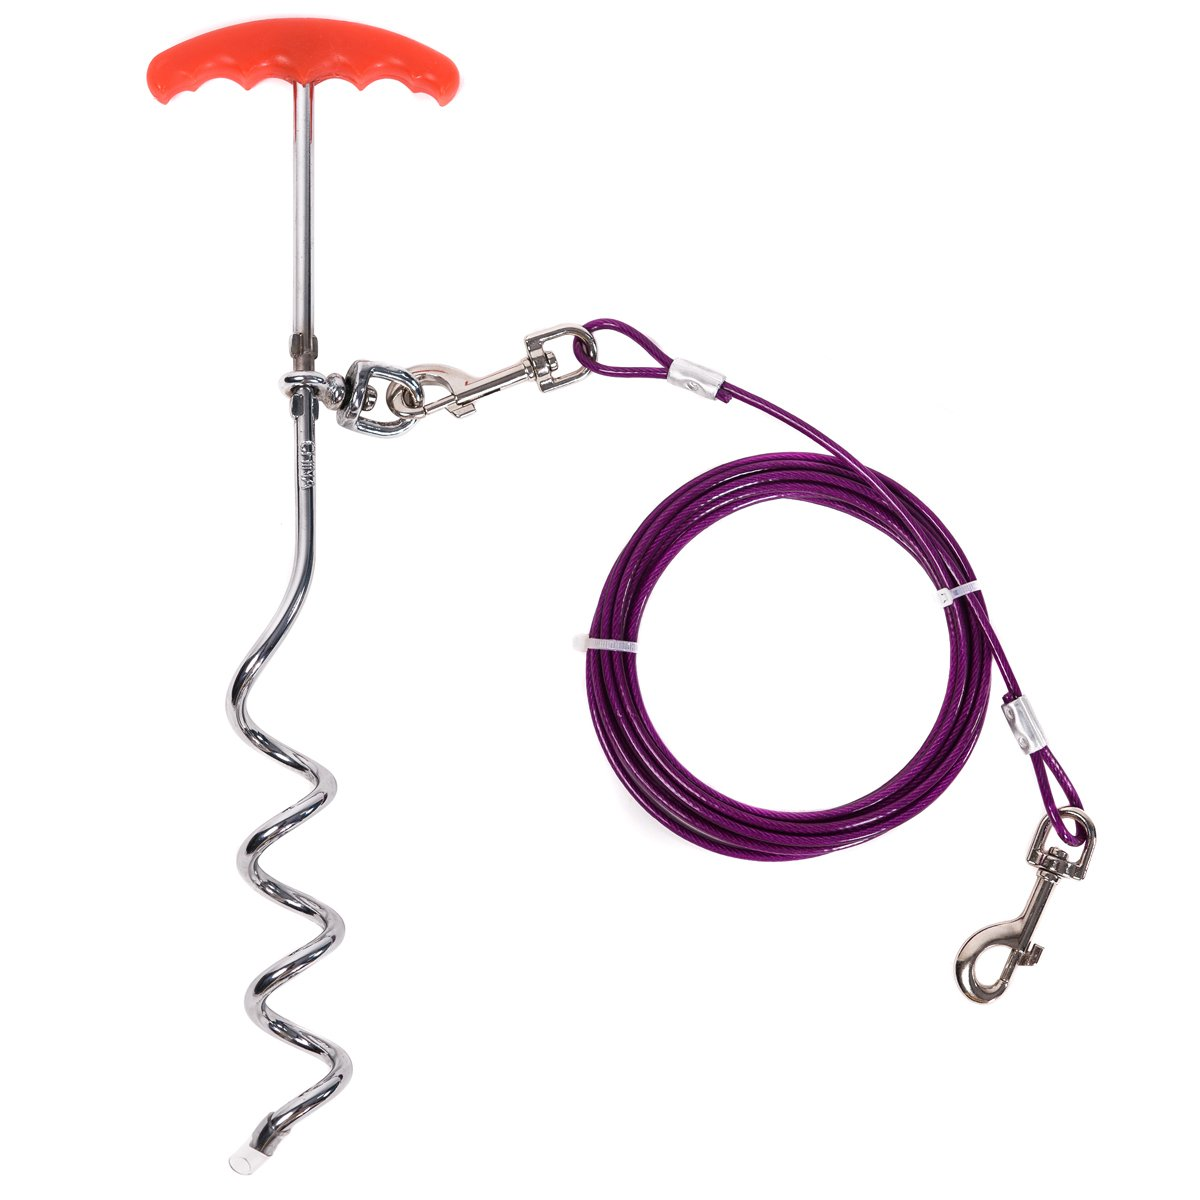 Favorite 16-inch Spiral Stake with 15-feet Tie Out Cable for Large Medium Dogs Outdoors, Camping and Garden